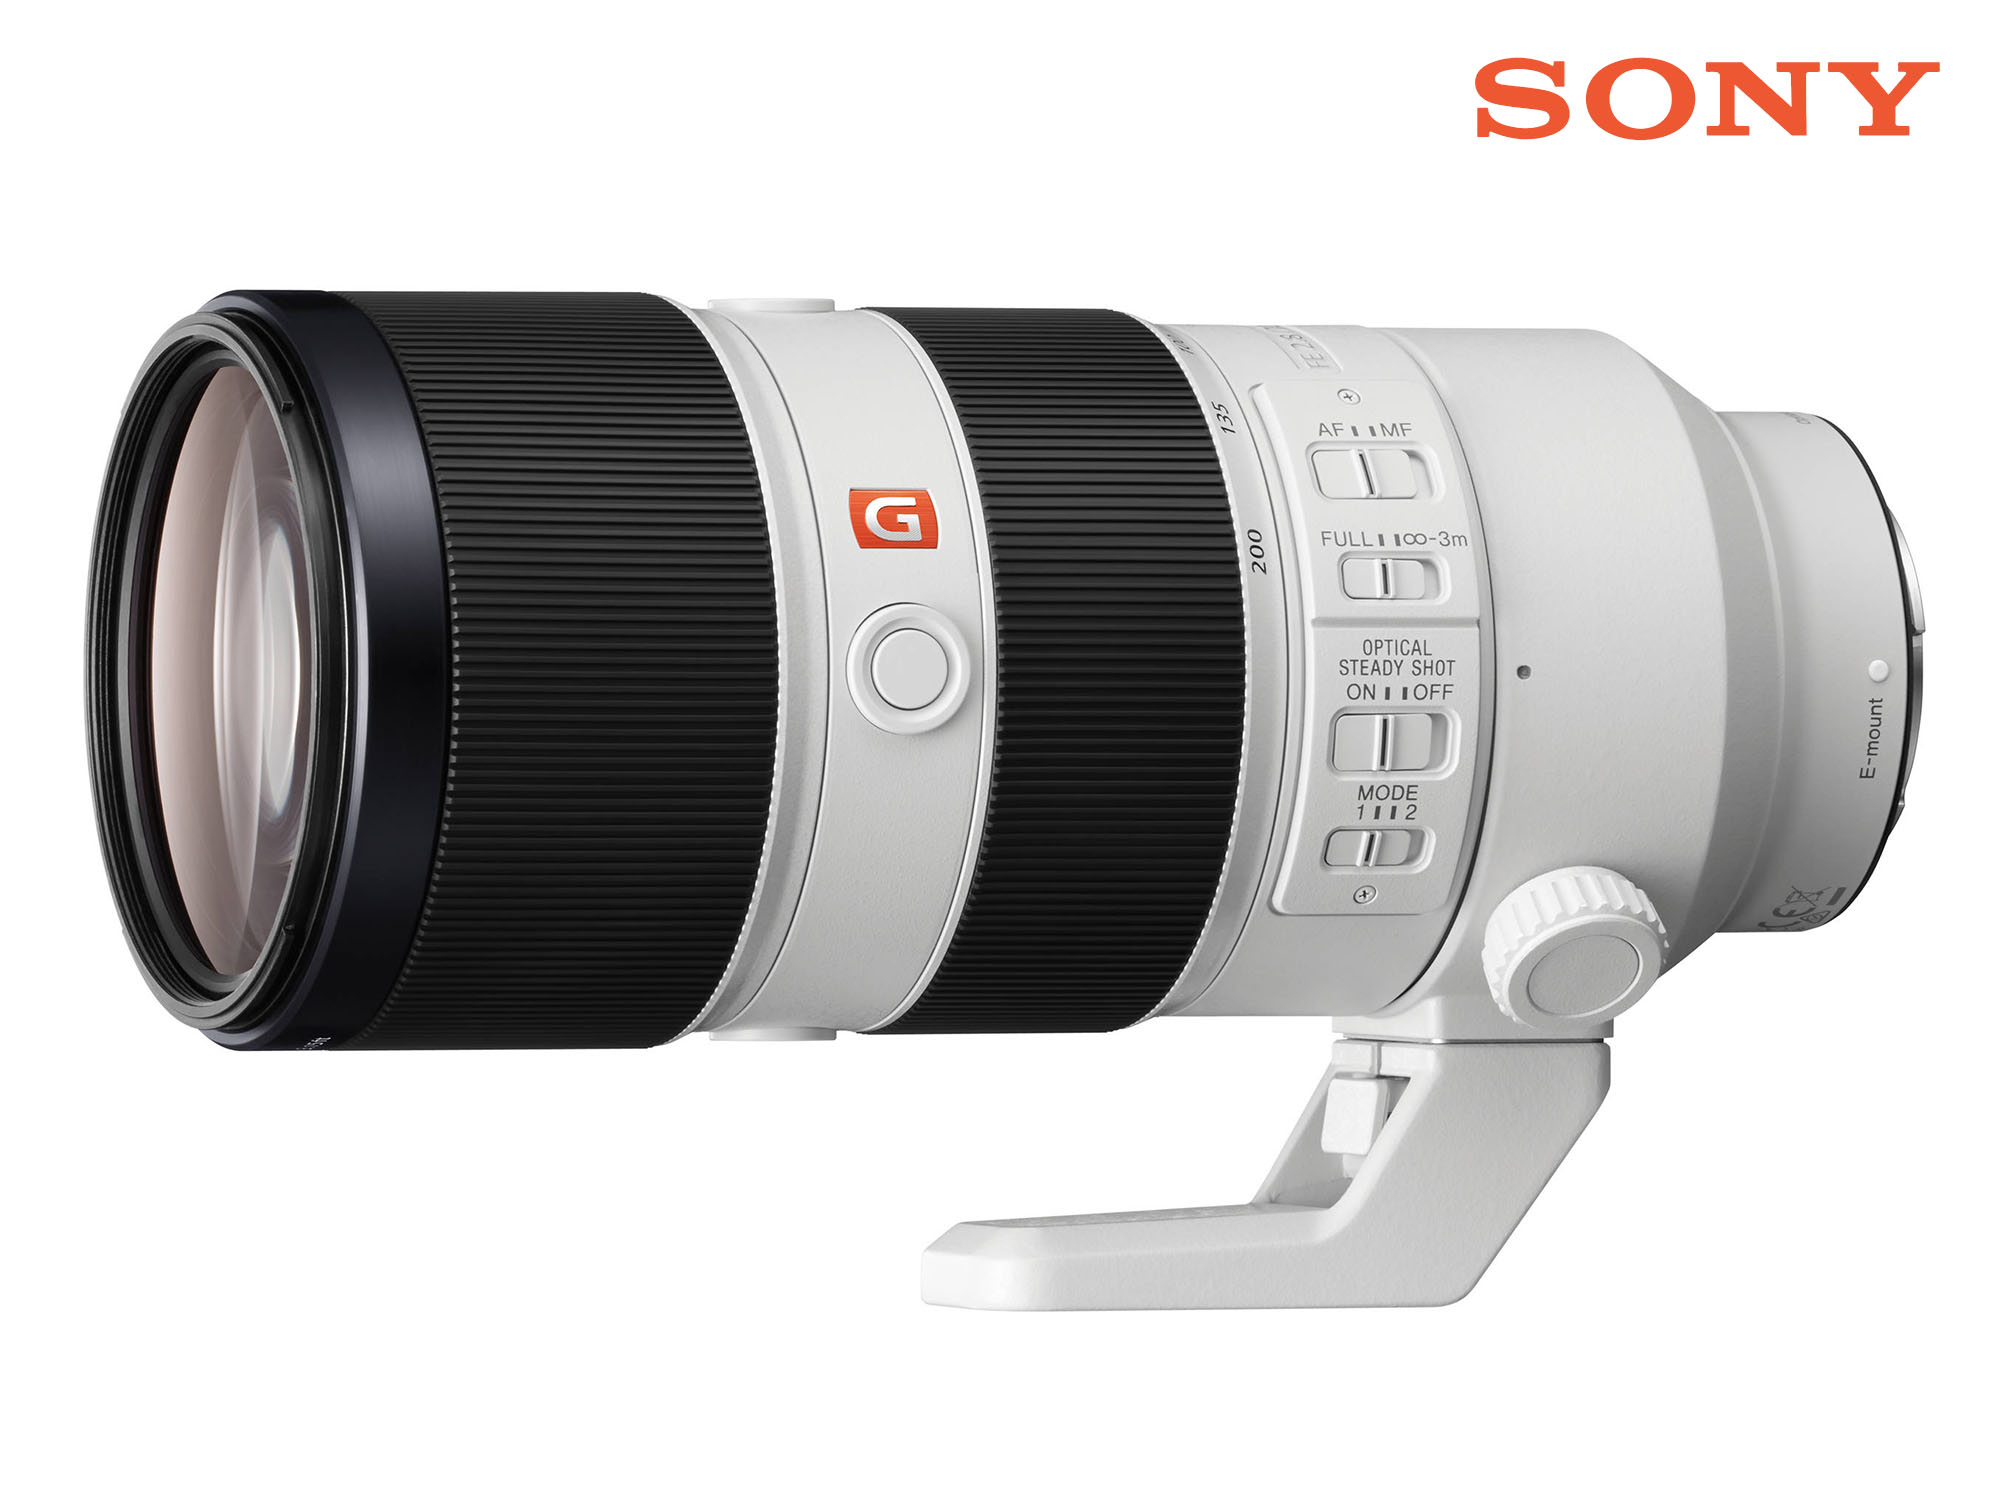 Sony Alpha FE 70-200mm F2.8 GM OSS E Mount Lens